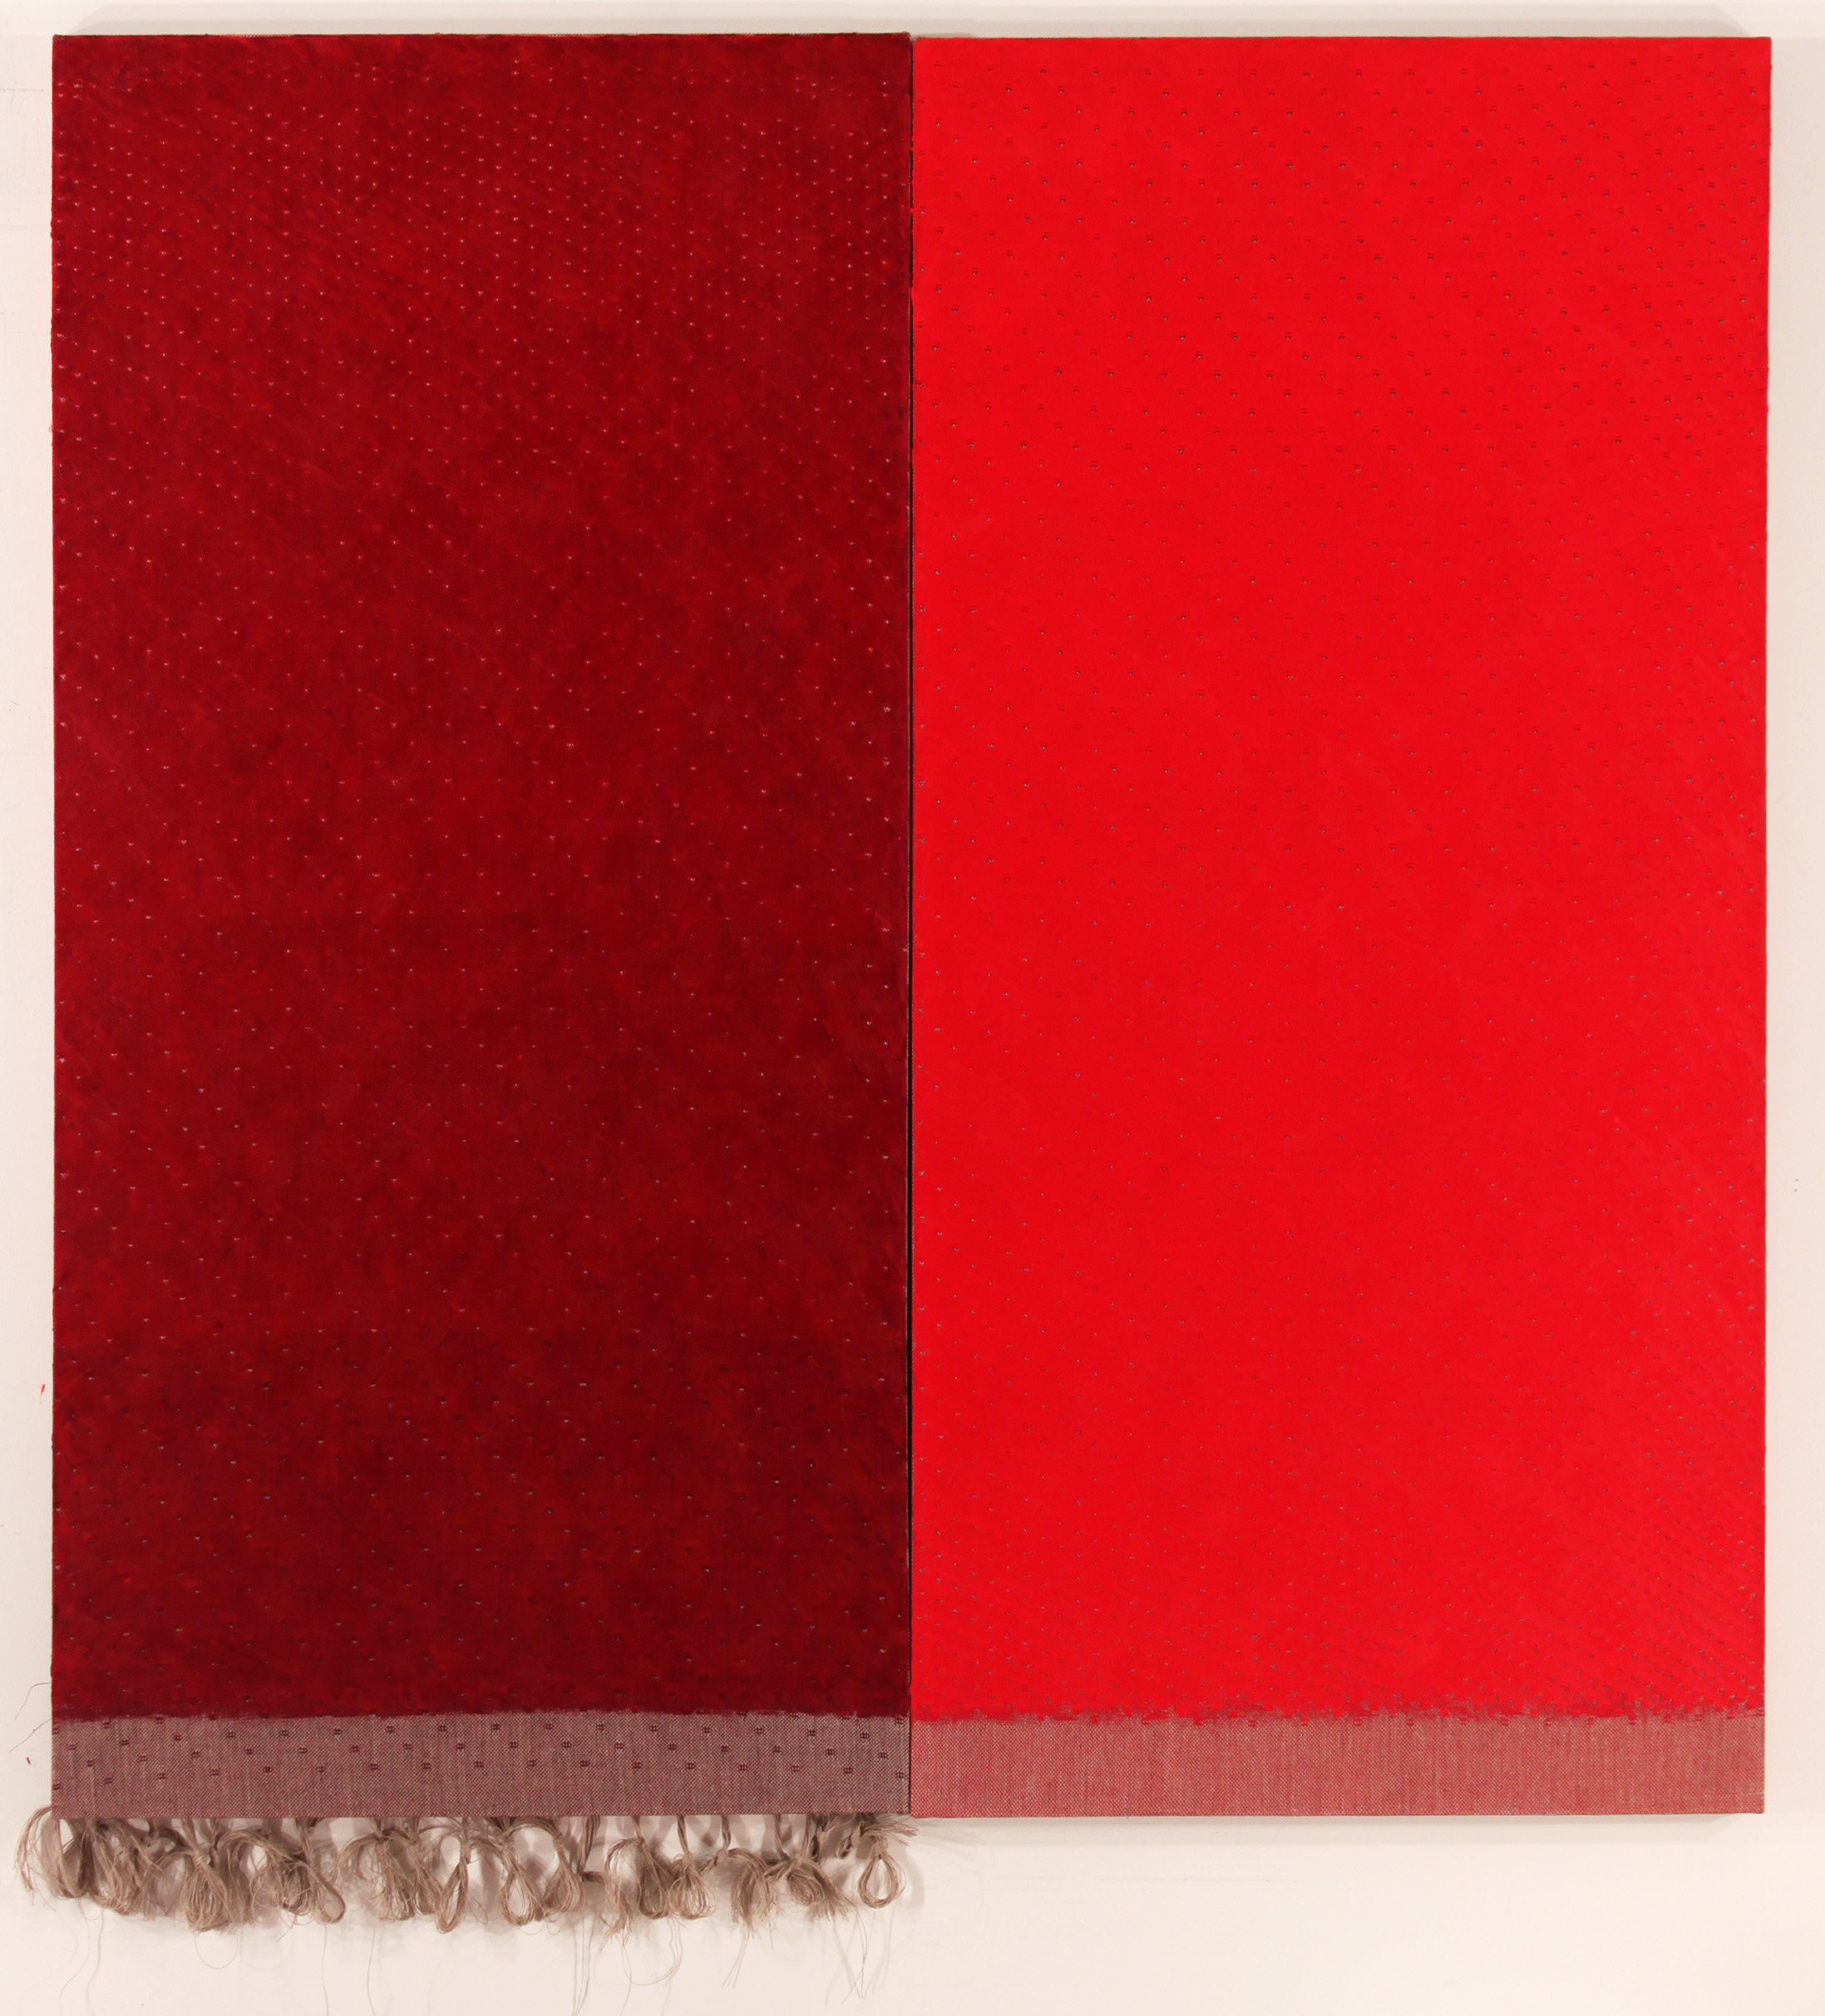 RED DIPTYCH, 2019 - 72 x 68 inch 183 x 174 cm, on handwoven dräll